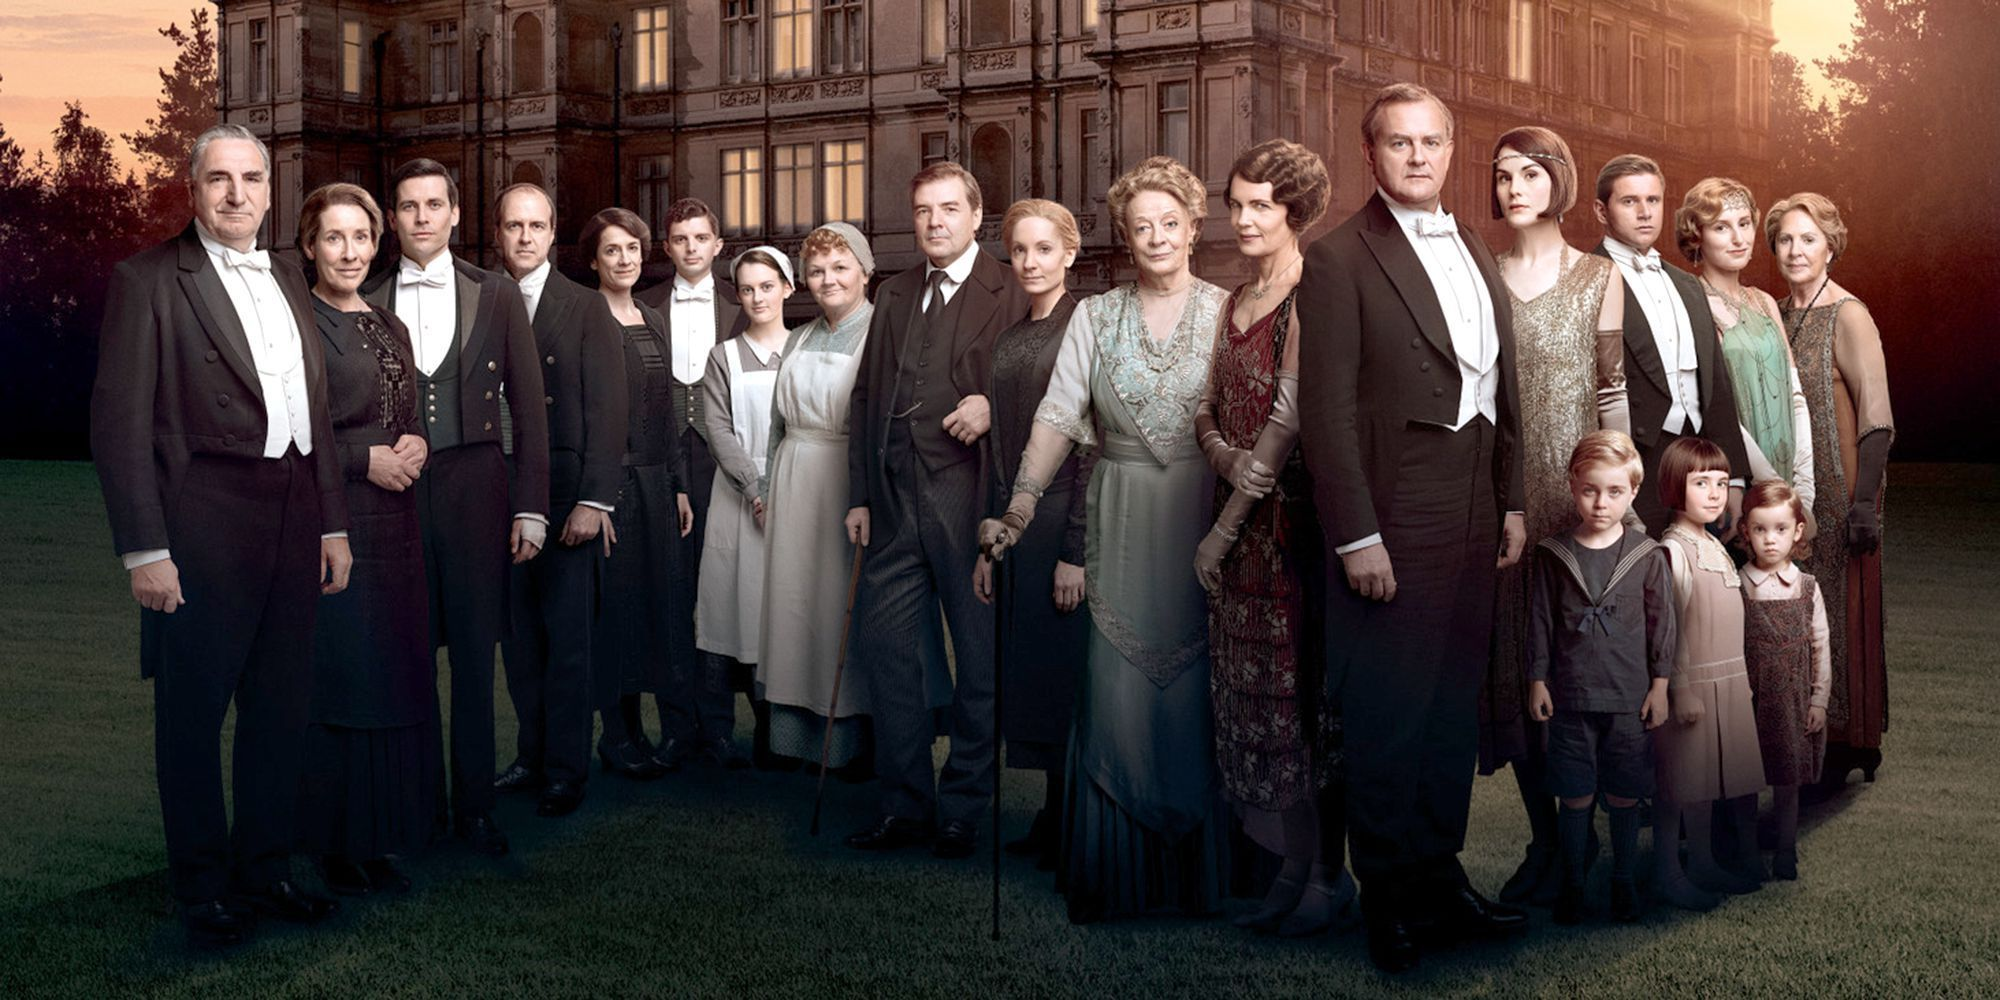 The Downton Abbey movie: everything we know so far